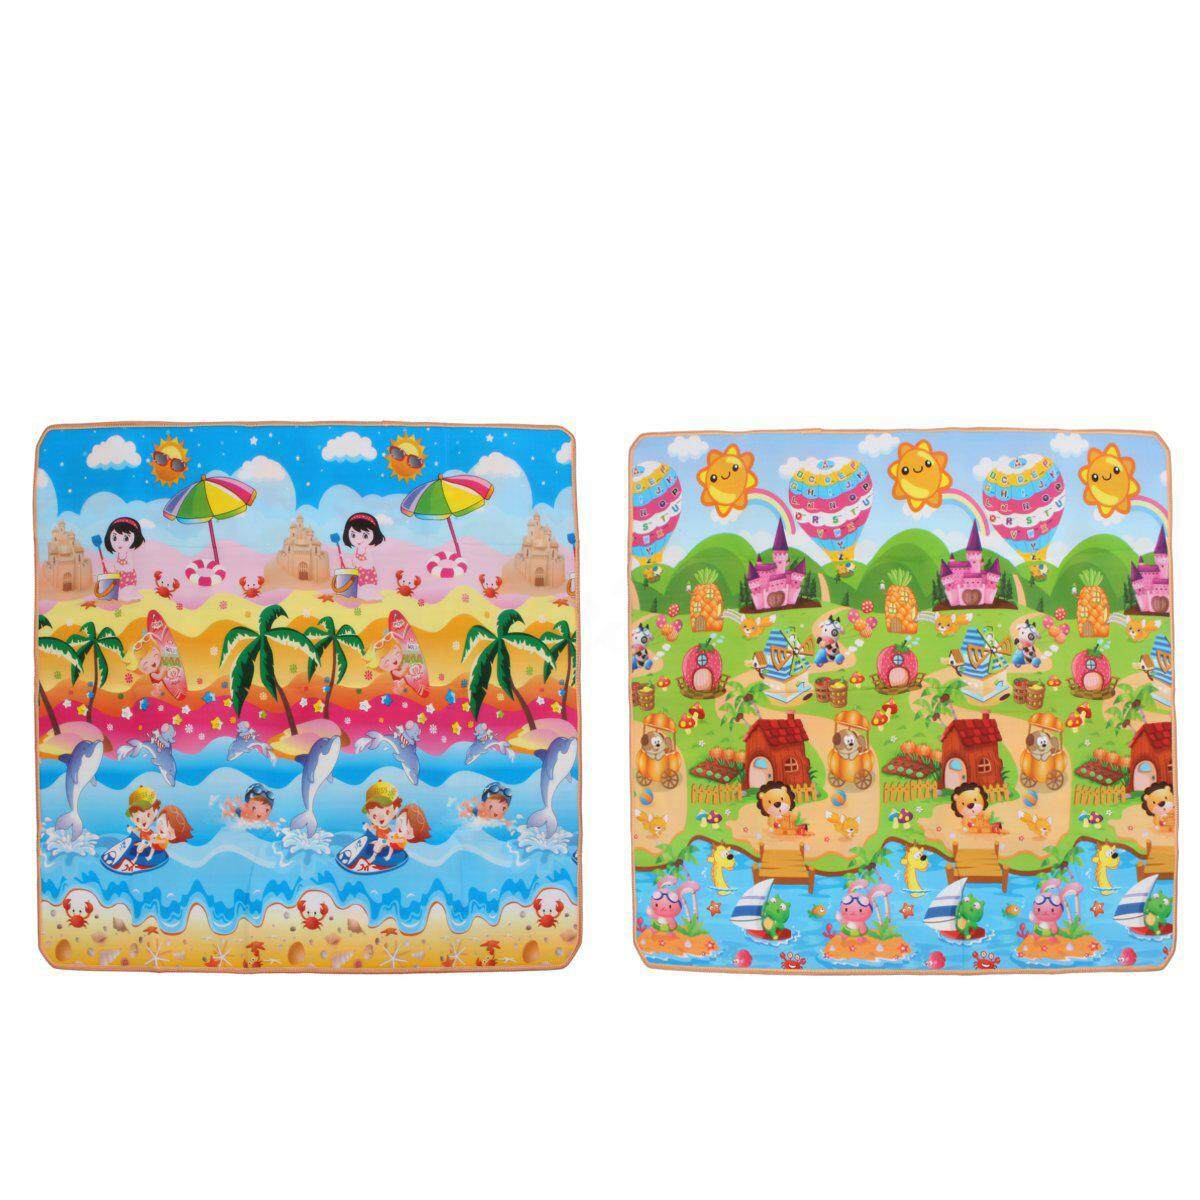 10mm 2mx1.8m Thick Xl Baby Kids Play Mat Floor Rug Picnic Cushion Crawling Mat By Glimmer.